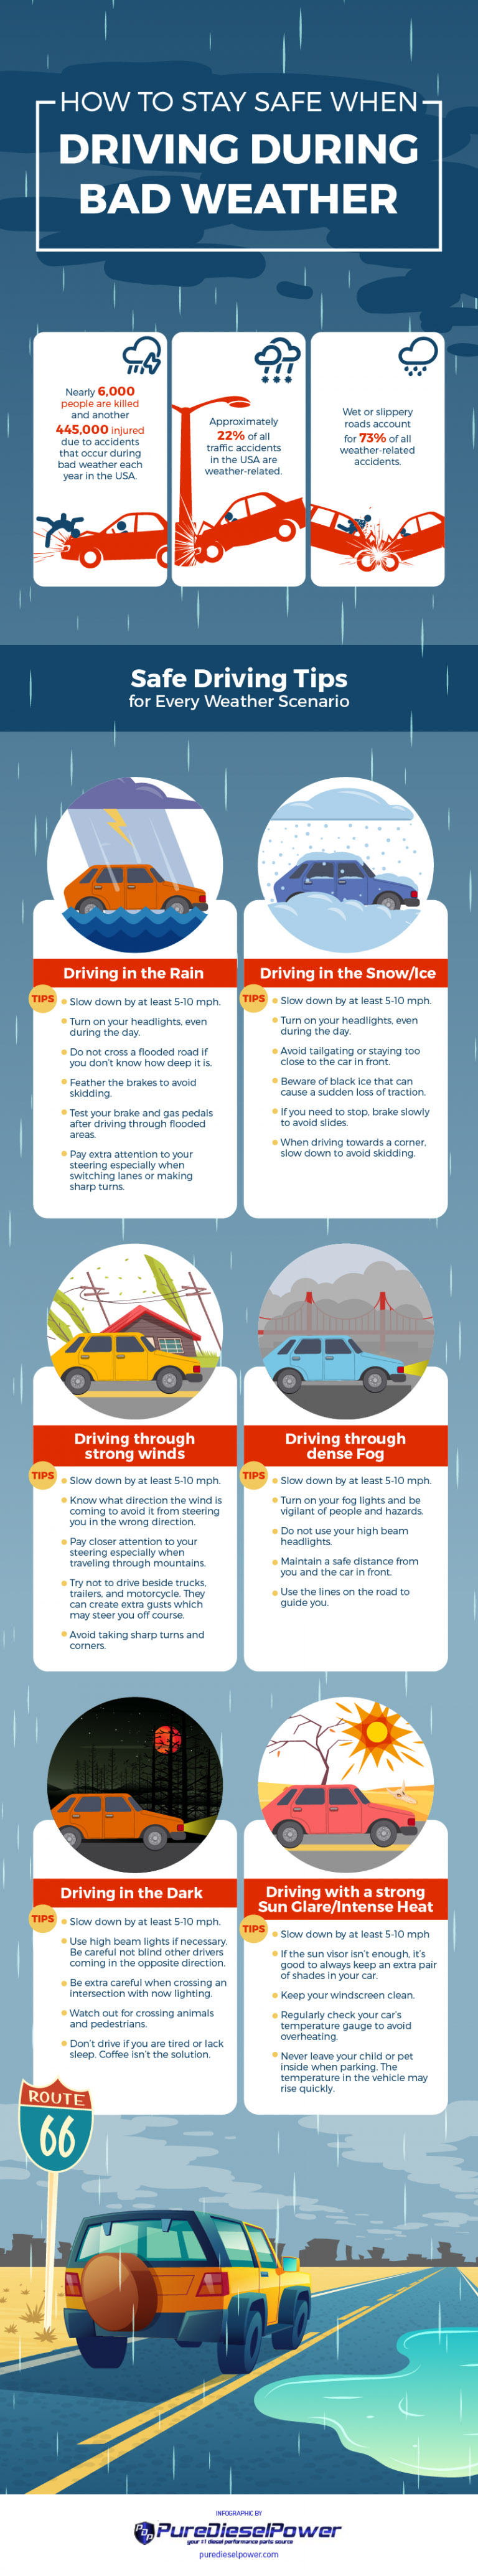 How to Stay Safe When Driving During Bad Weather